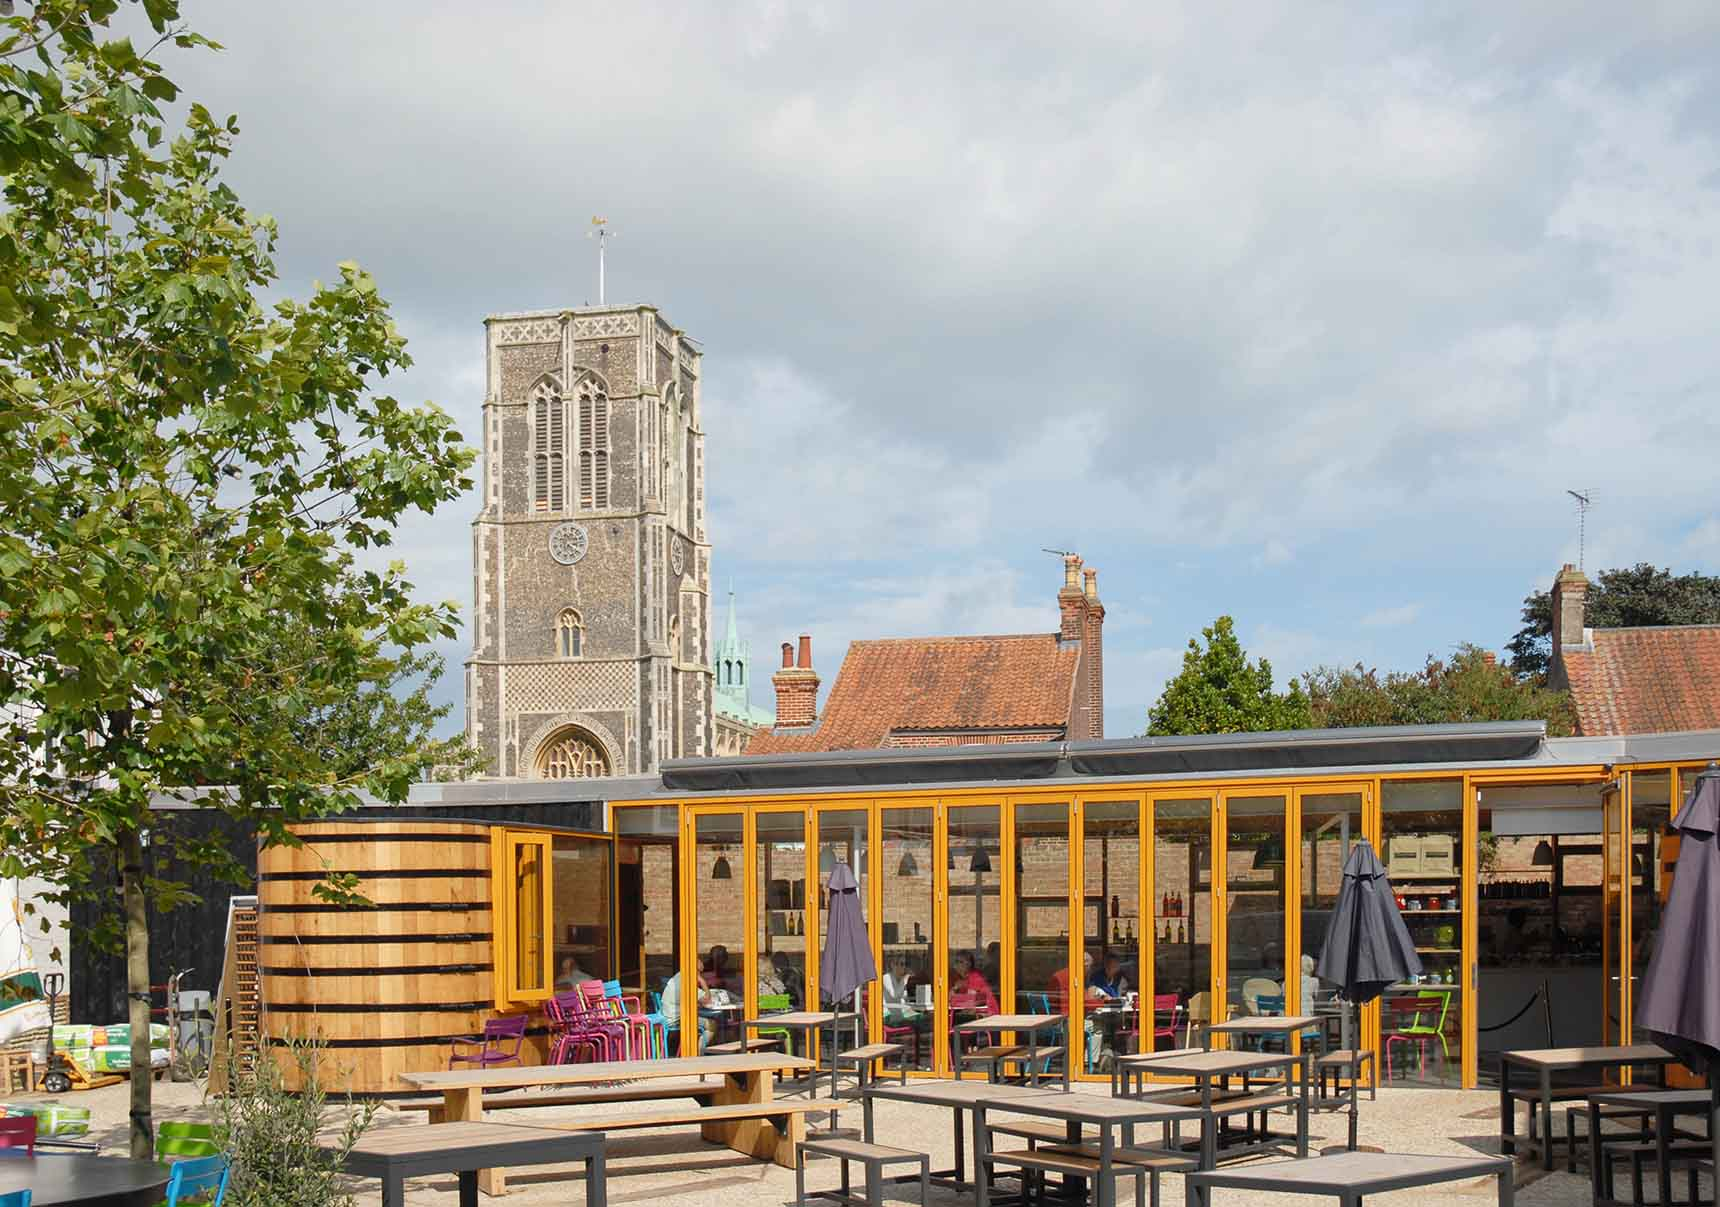 Sunny view of Drayman Square with cafe glazed wall behind and St.Edmunds Church tower in background.